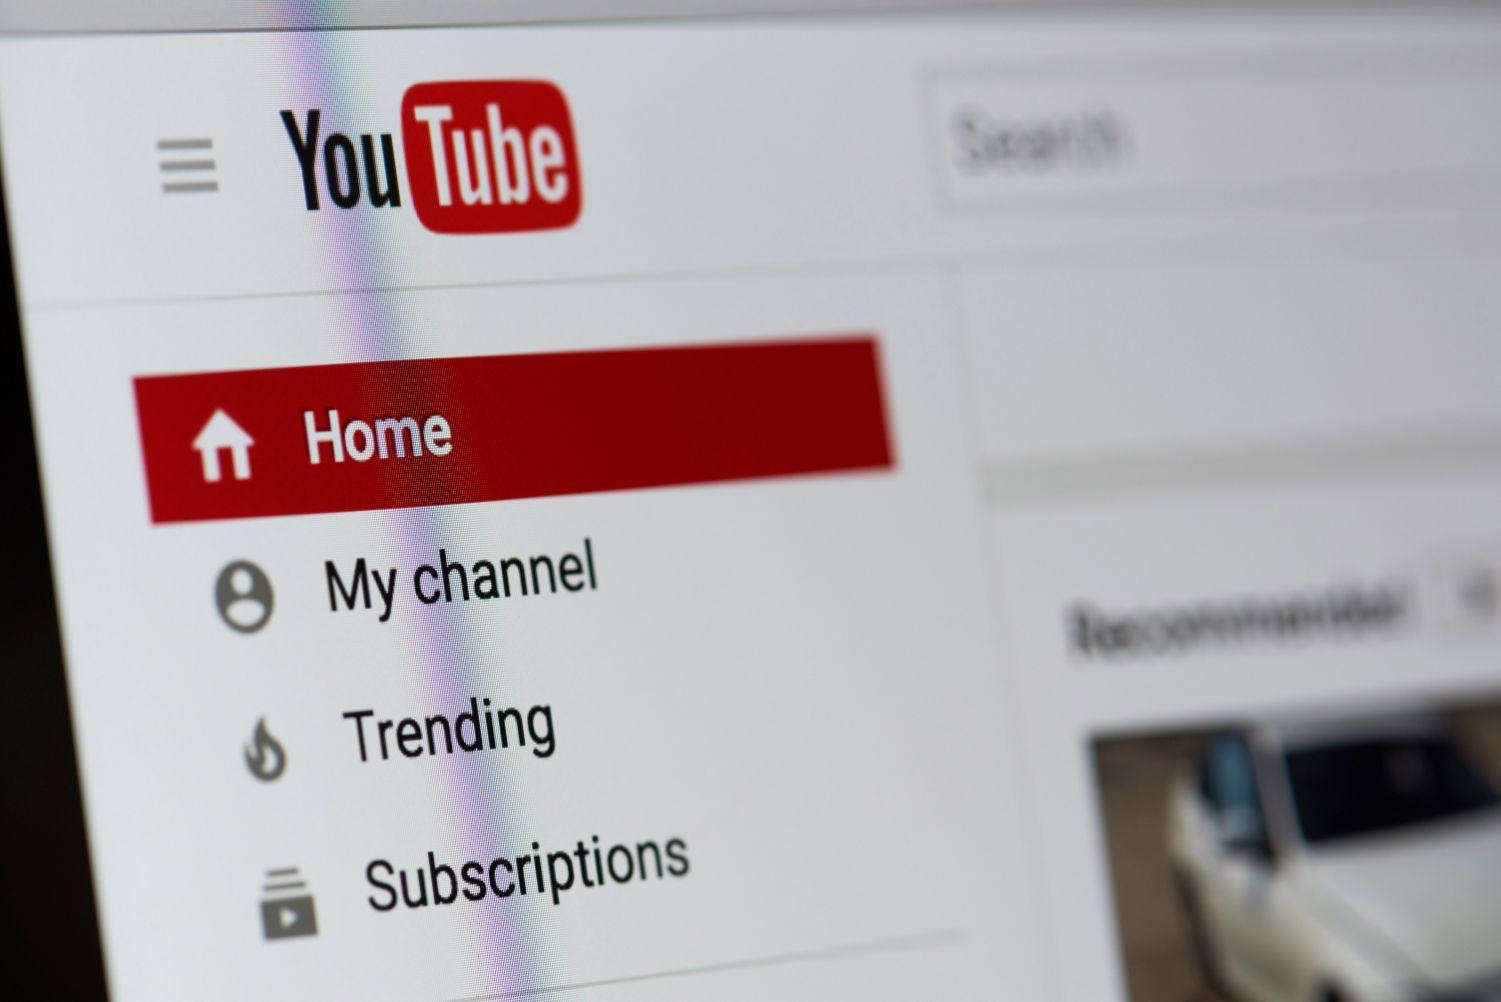 How To Upload A Video To Youtube Pre During Post Checklist